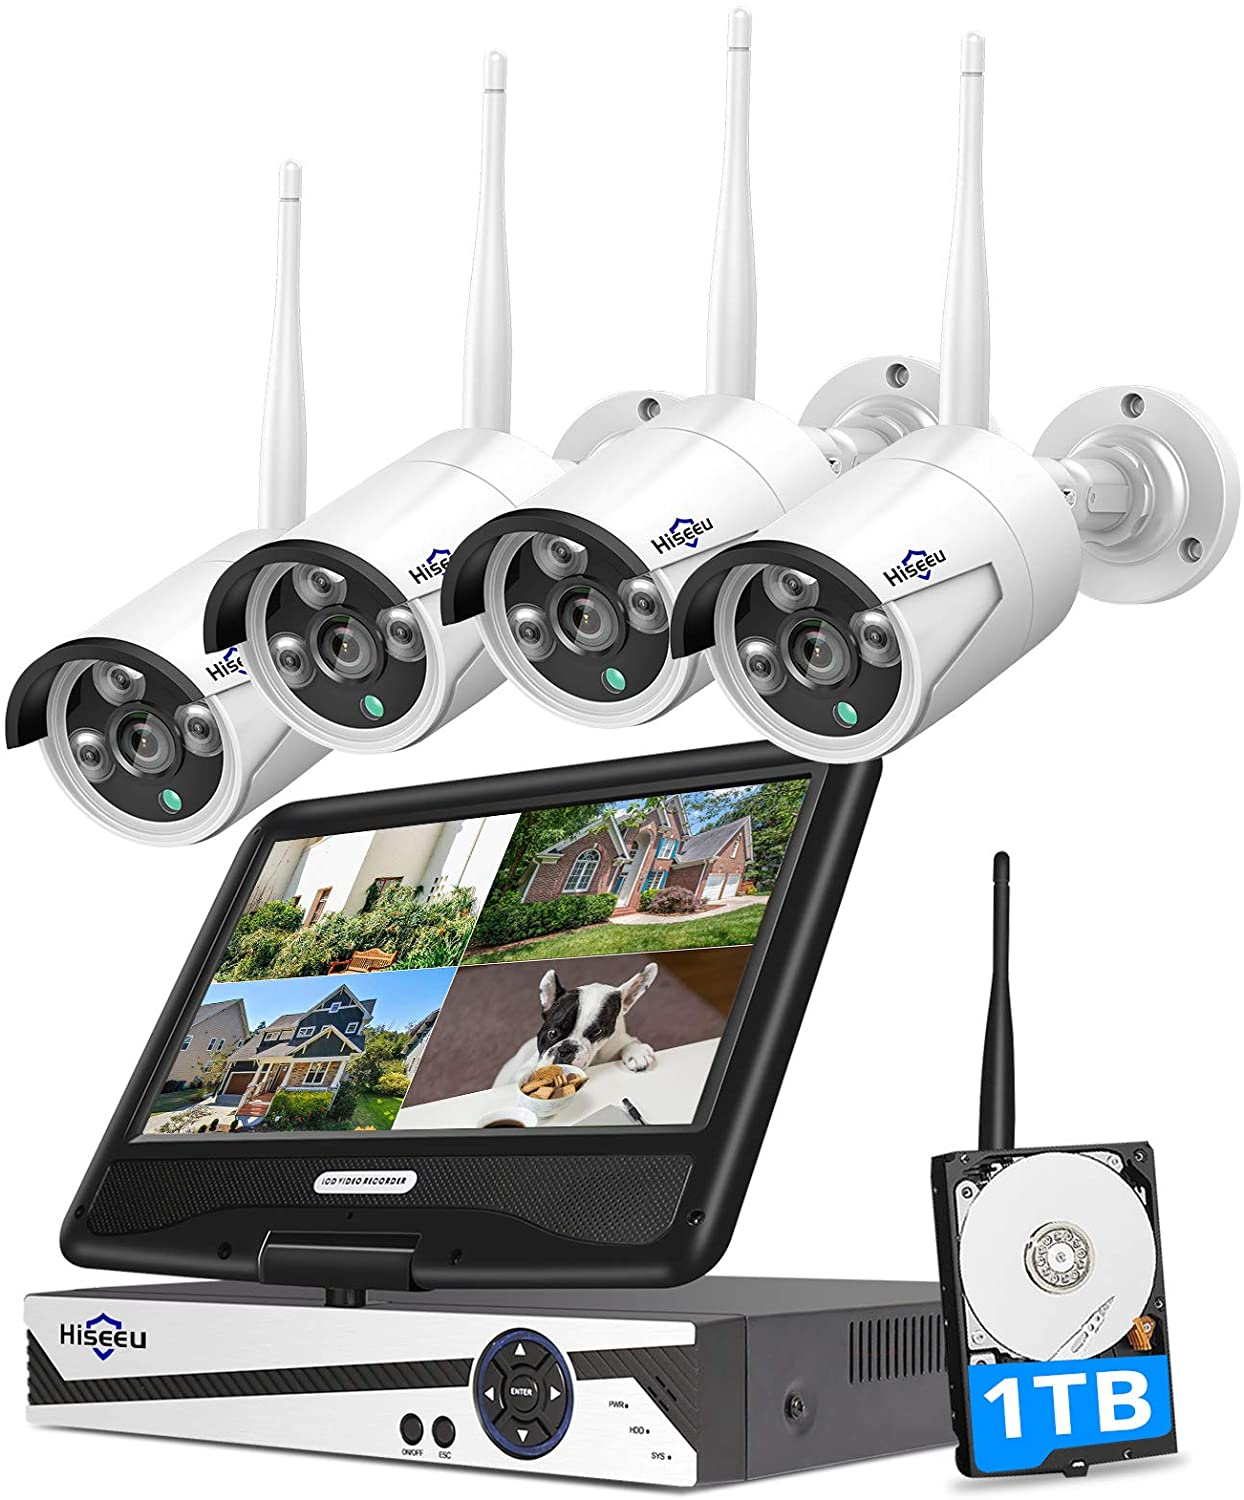 Hiseeu Wireless Home Security Camera System